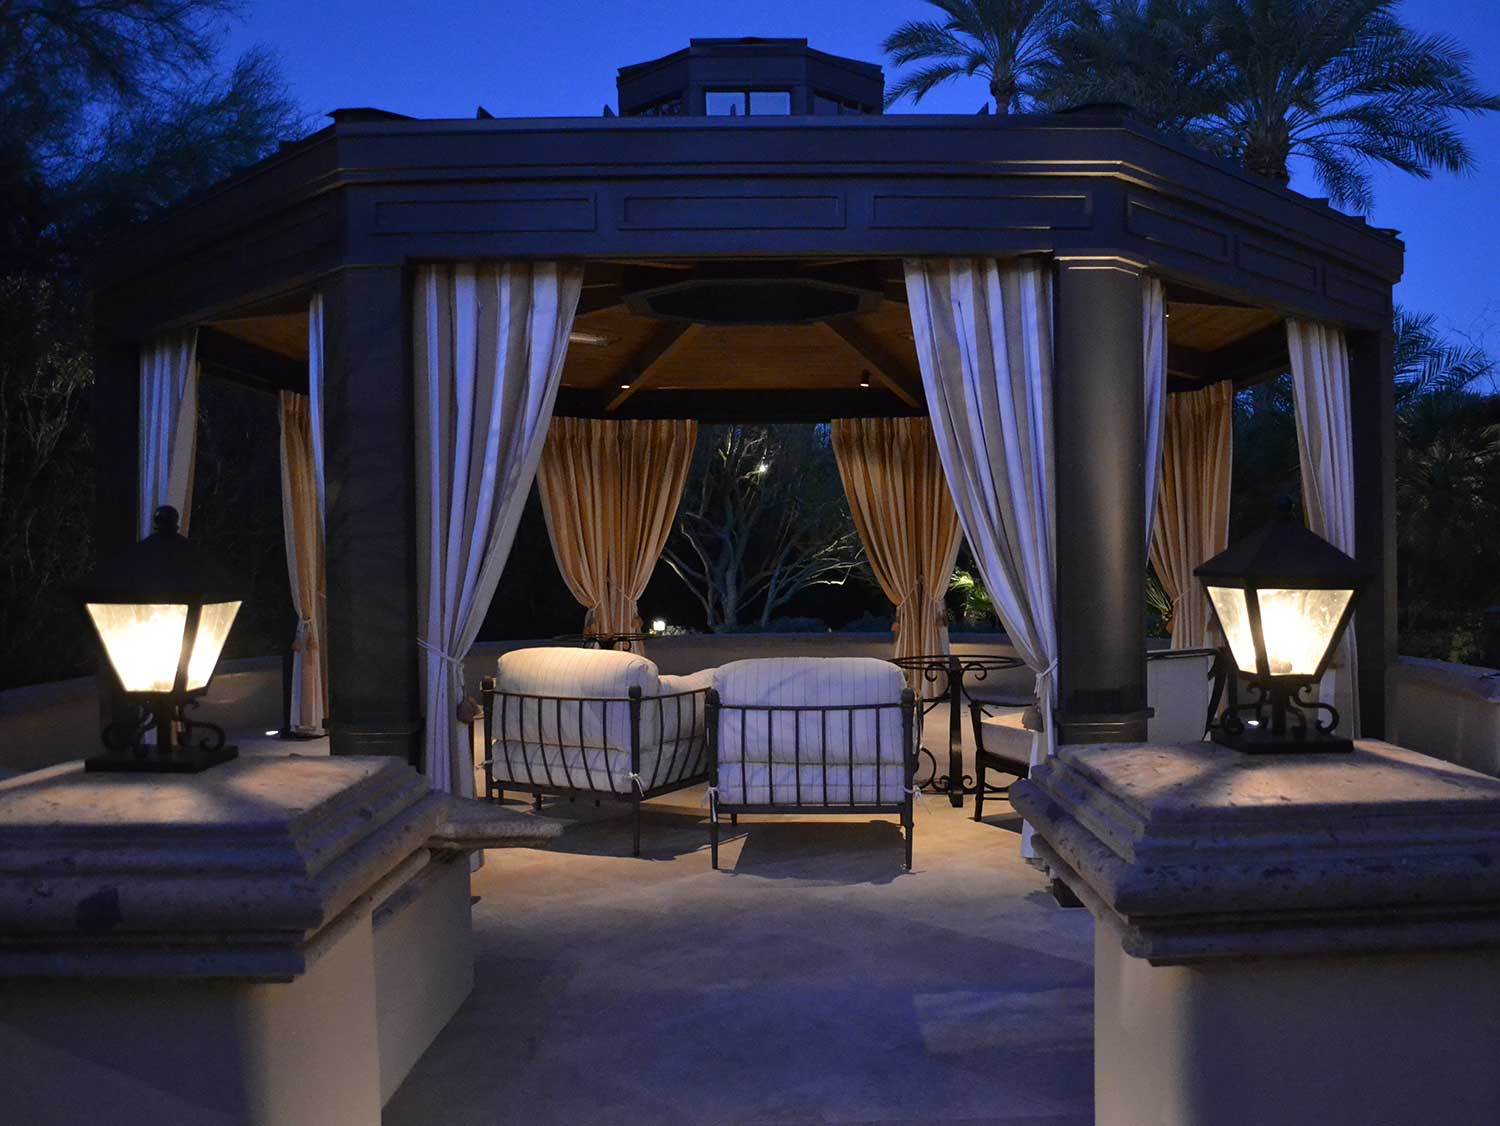 An outdoor sitting area with canopy